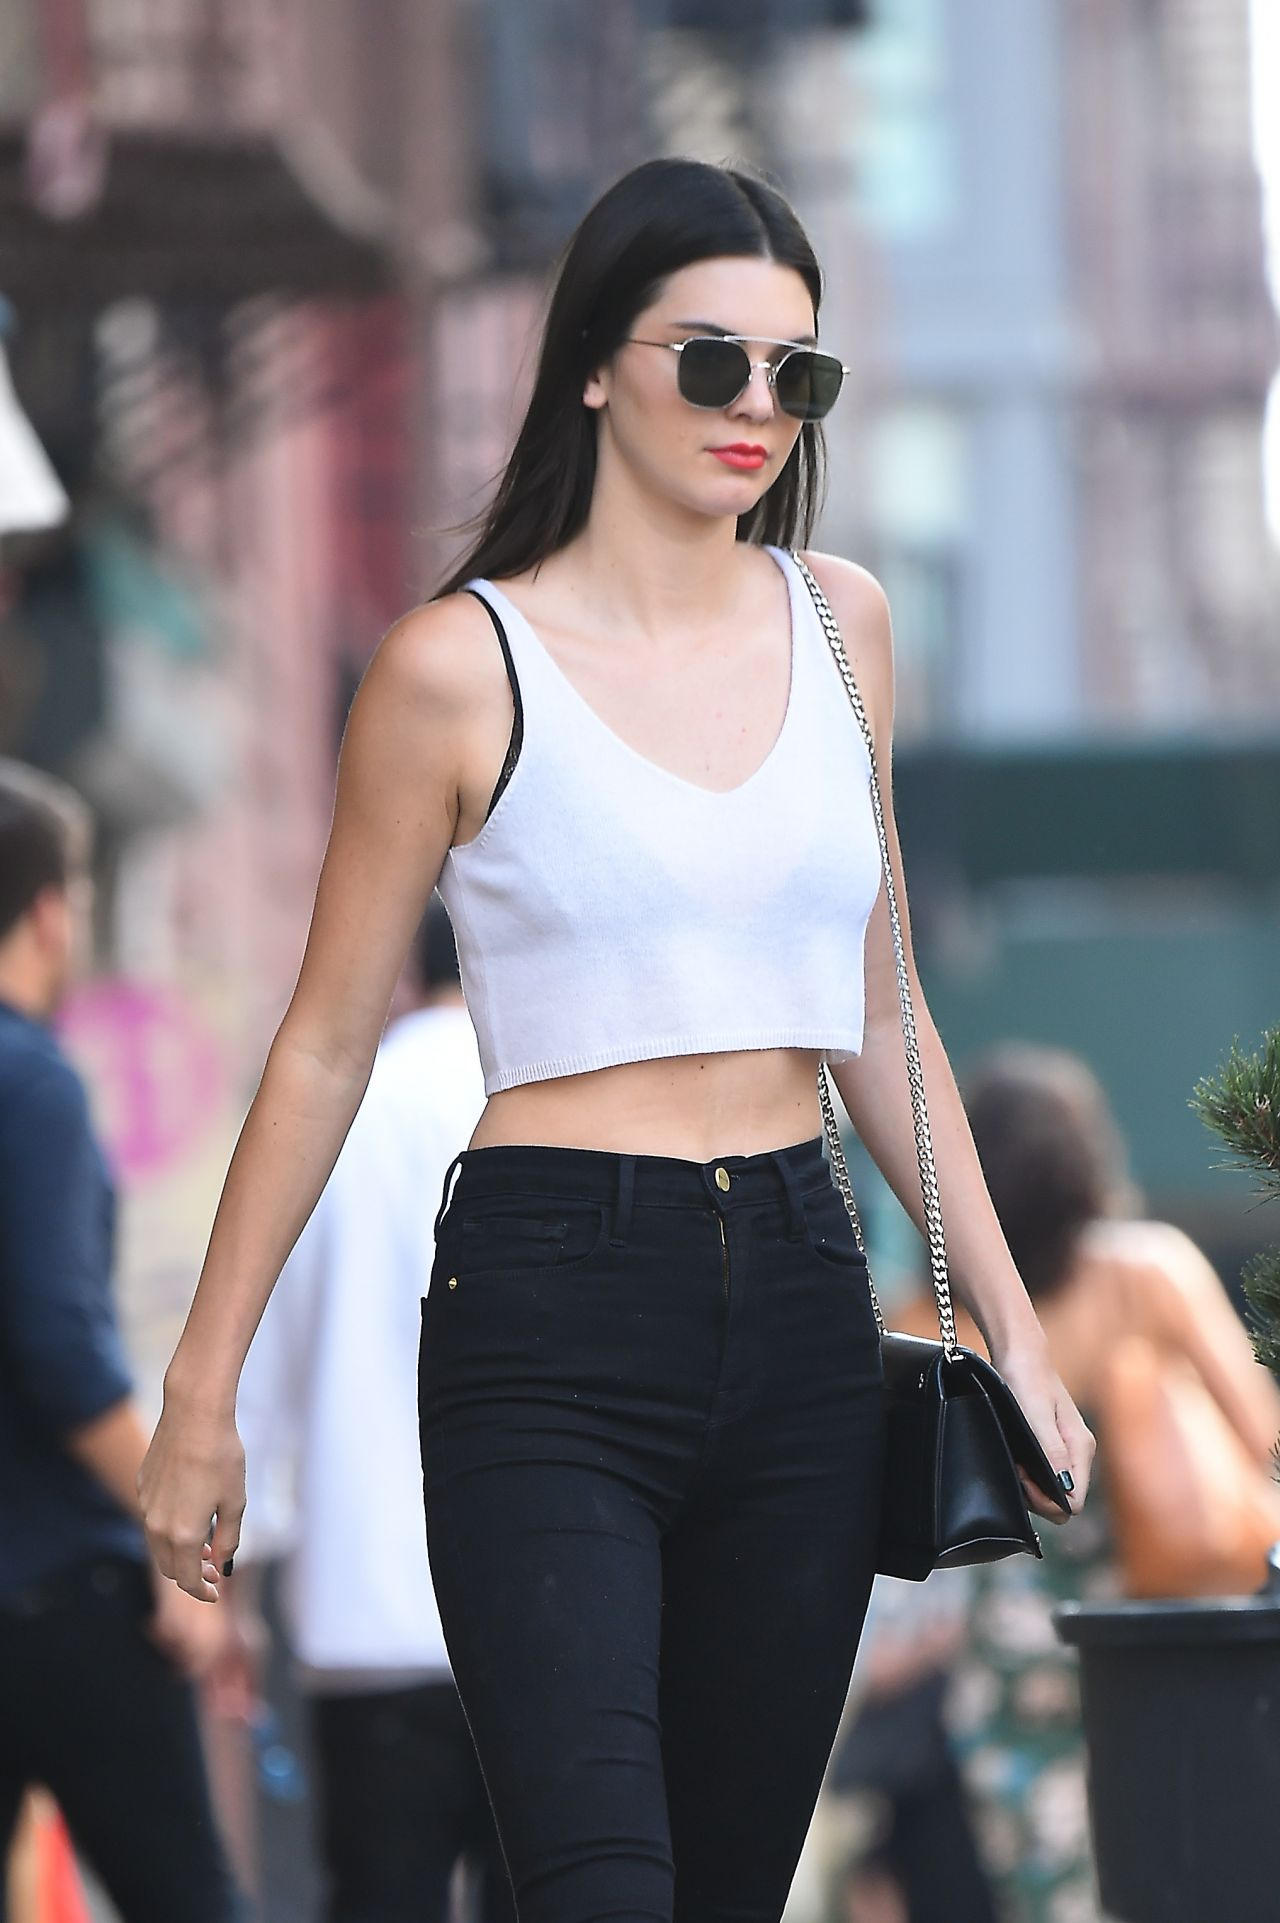 Kendall Jenner Chic Outfit Nyc 7 22 2016